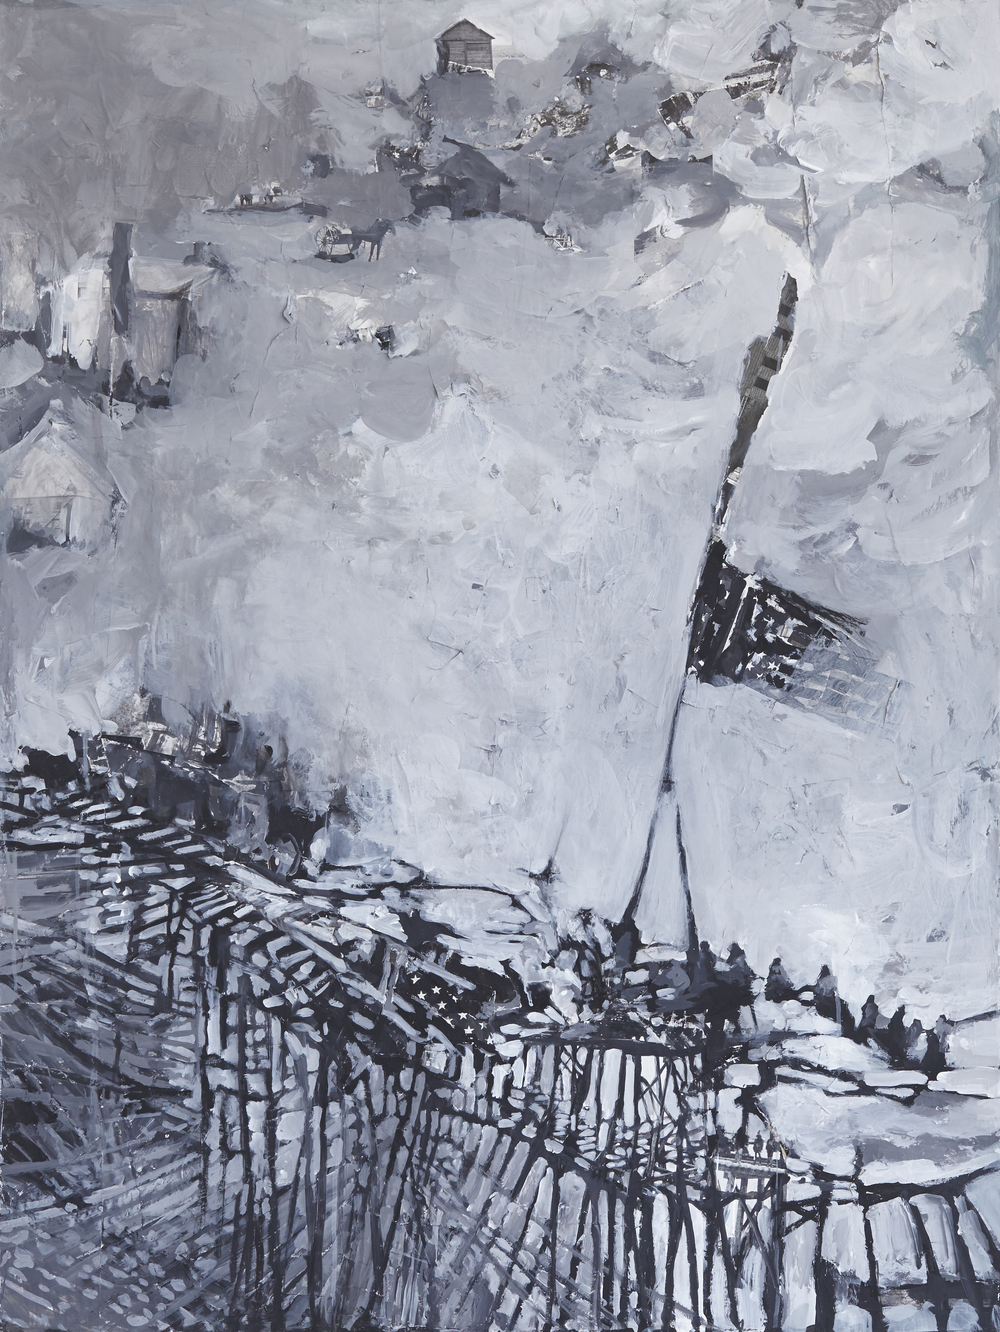 "Bridge, mixed media on panel, 36x 18"", 2013"